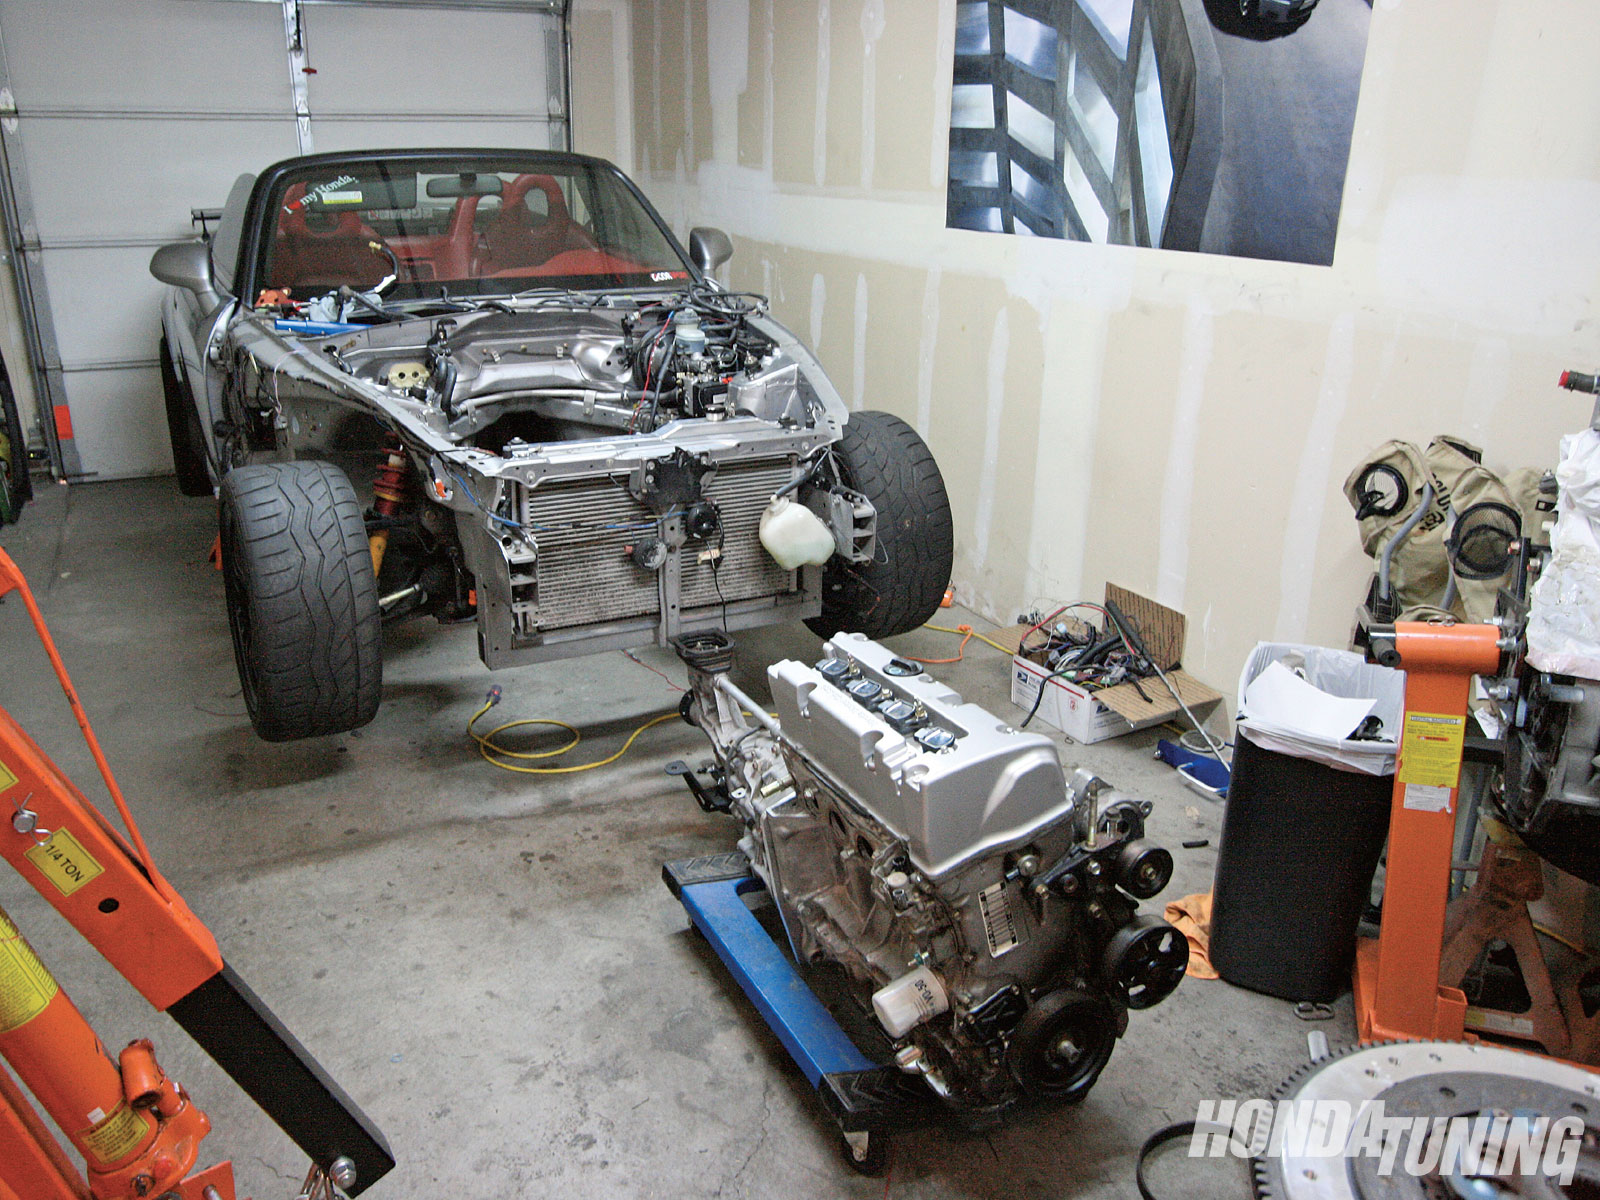 hight resolution of htup 1010 01 o k24 swap into s2000 chassis s2000 chassis htup 1010 k24 into s2000 chassis swap